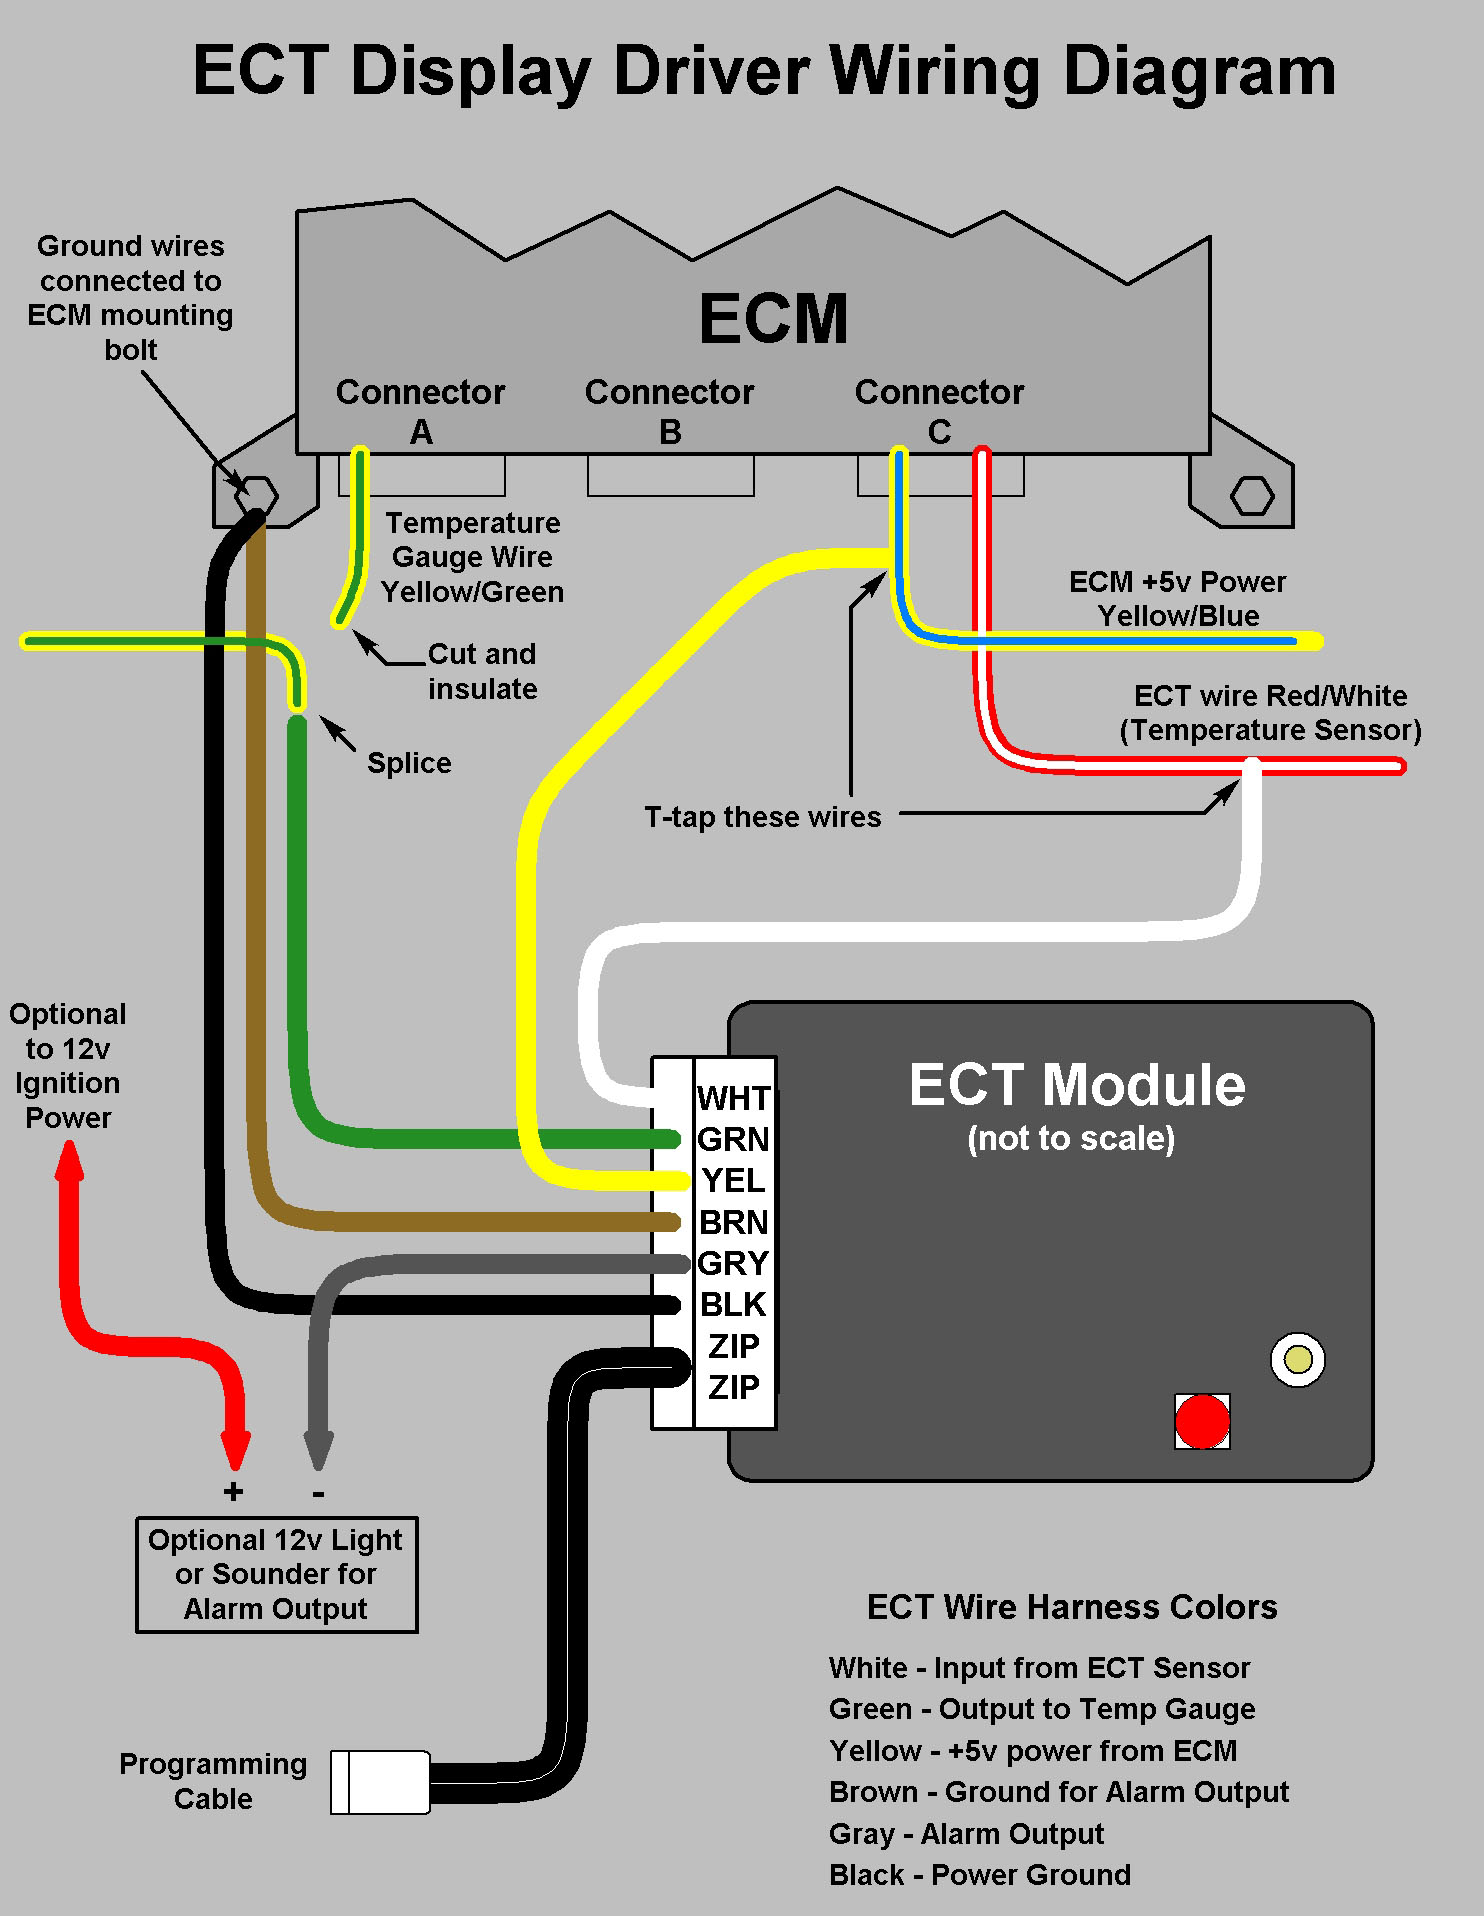 ECT wiring diagram modifry's s2000 ect installation engine coolant temperature sensor wiring diagram at bayanpartner.co